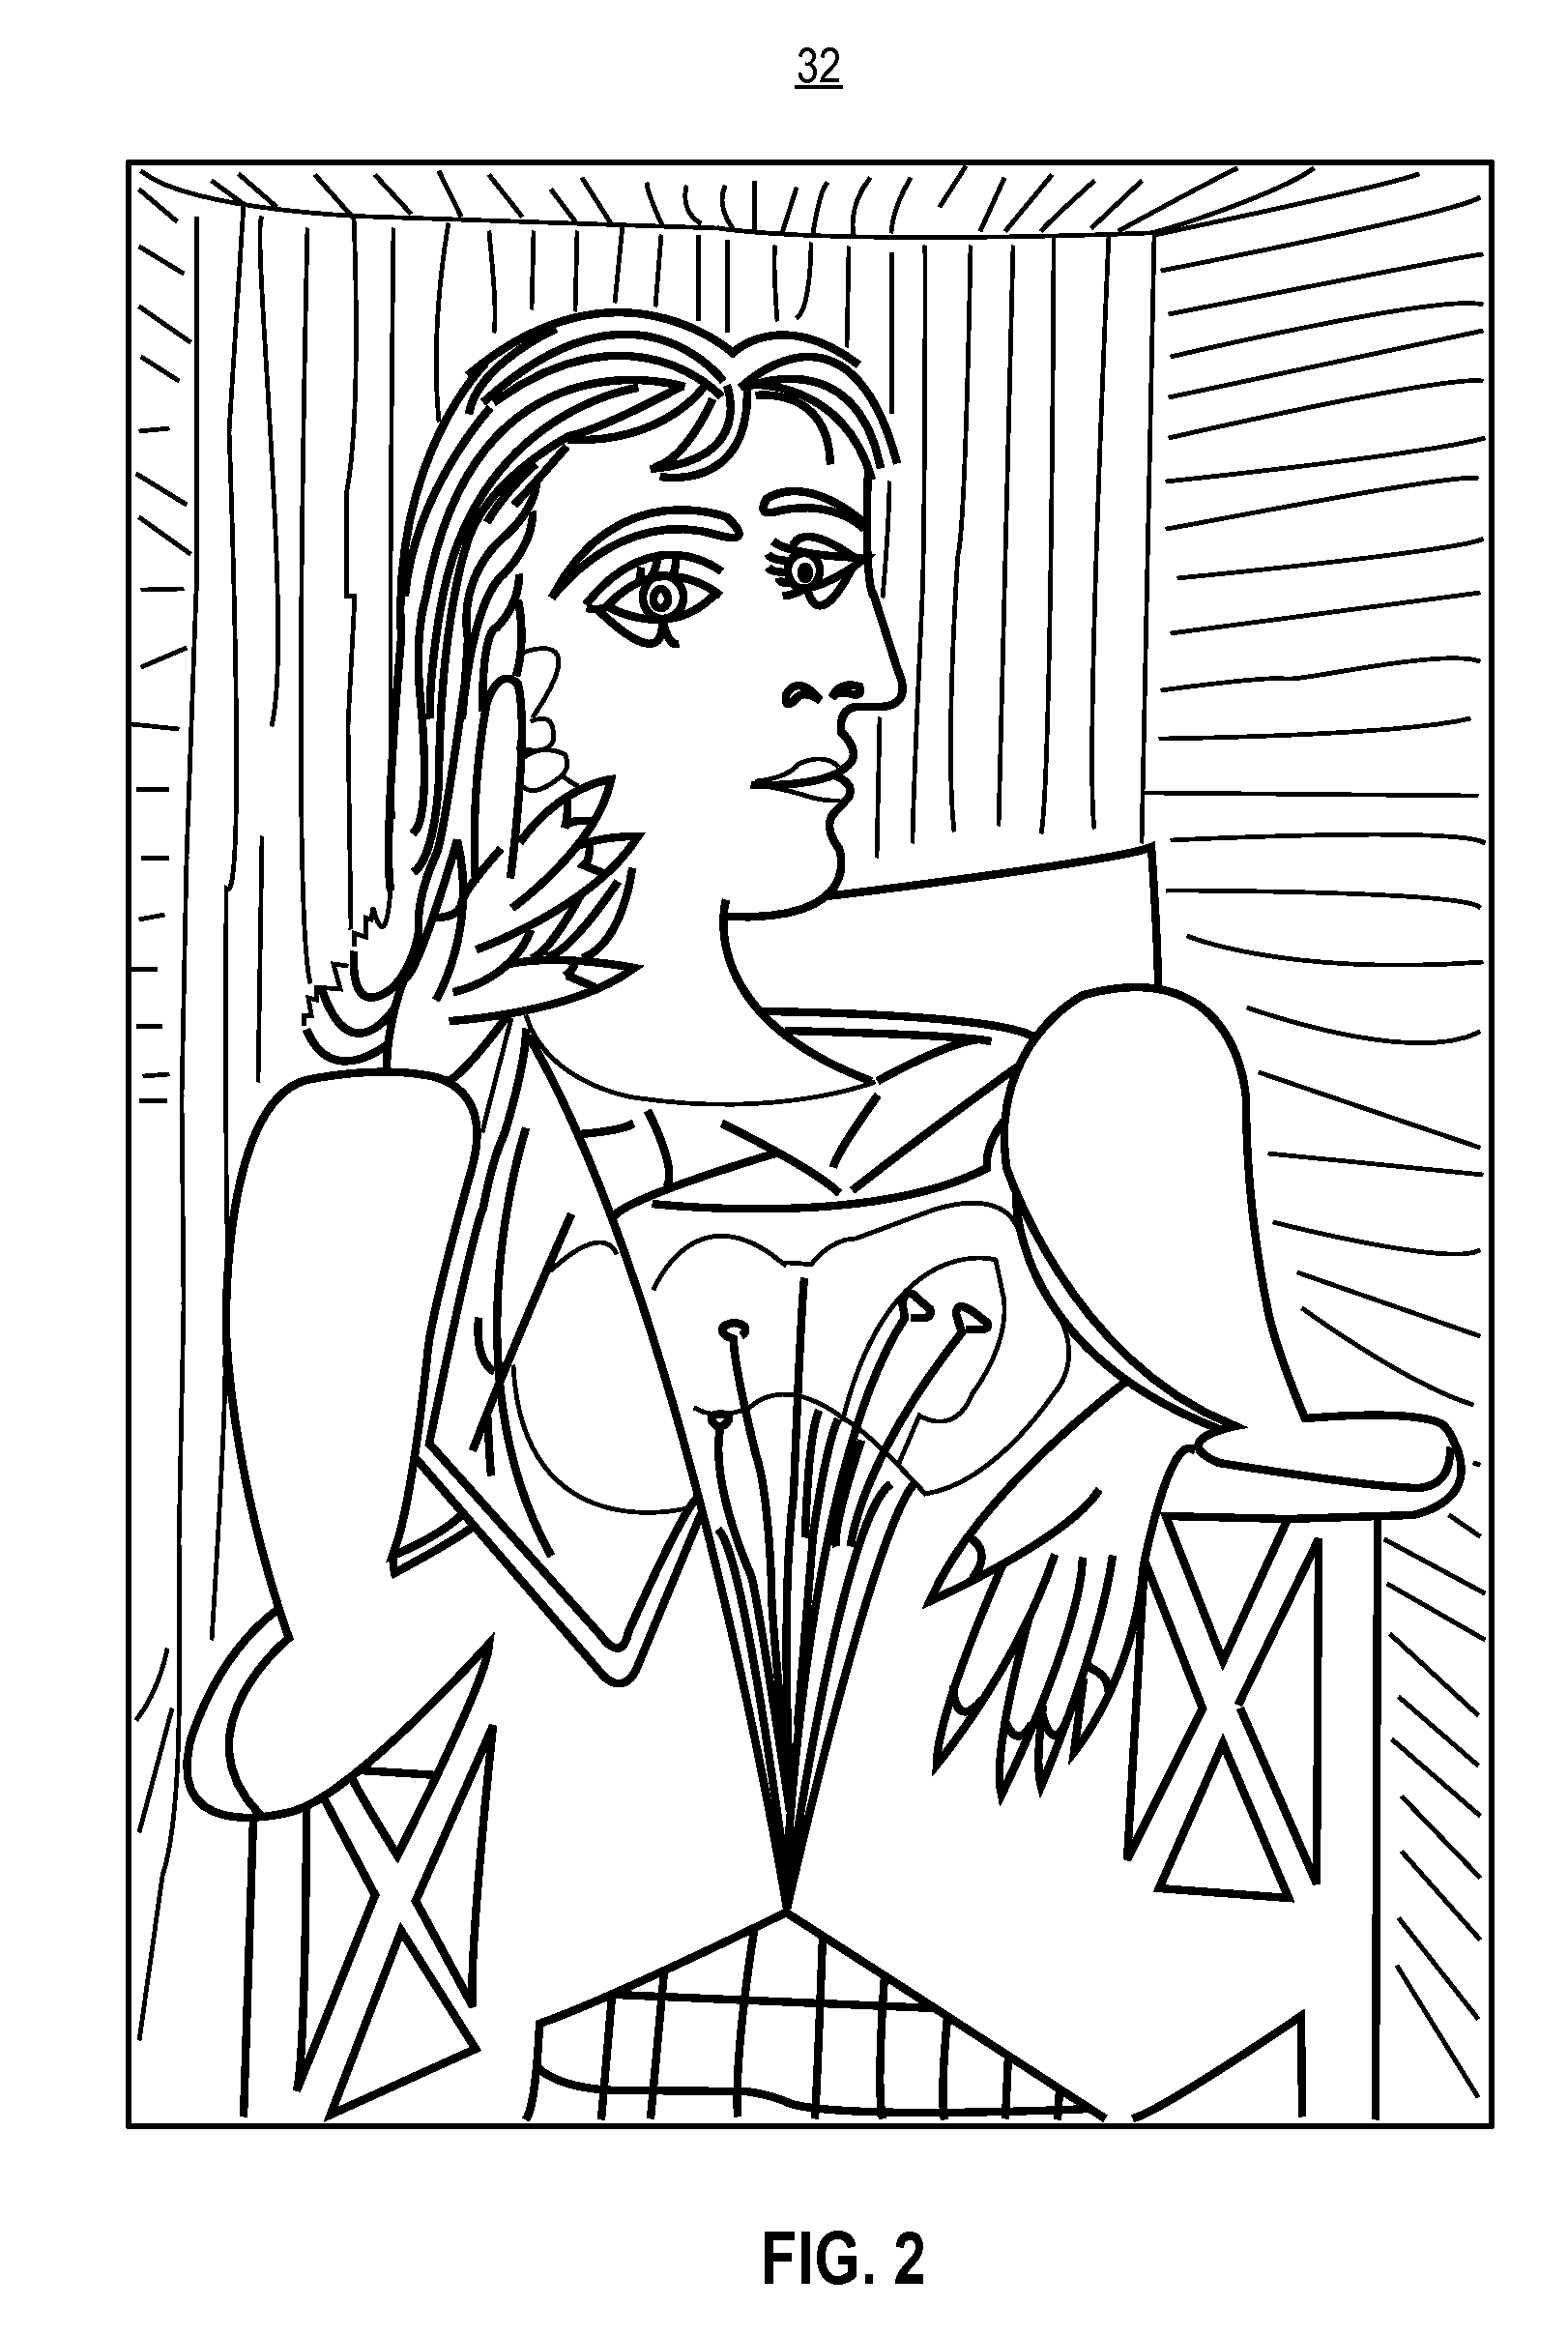 picasso coloring book picasso famous paintings coloring page sketch coloring page coloring book picasso